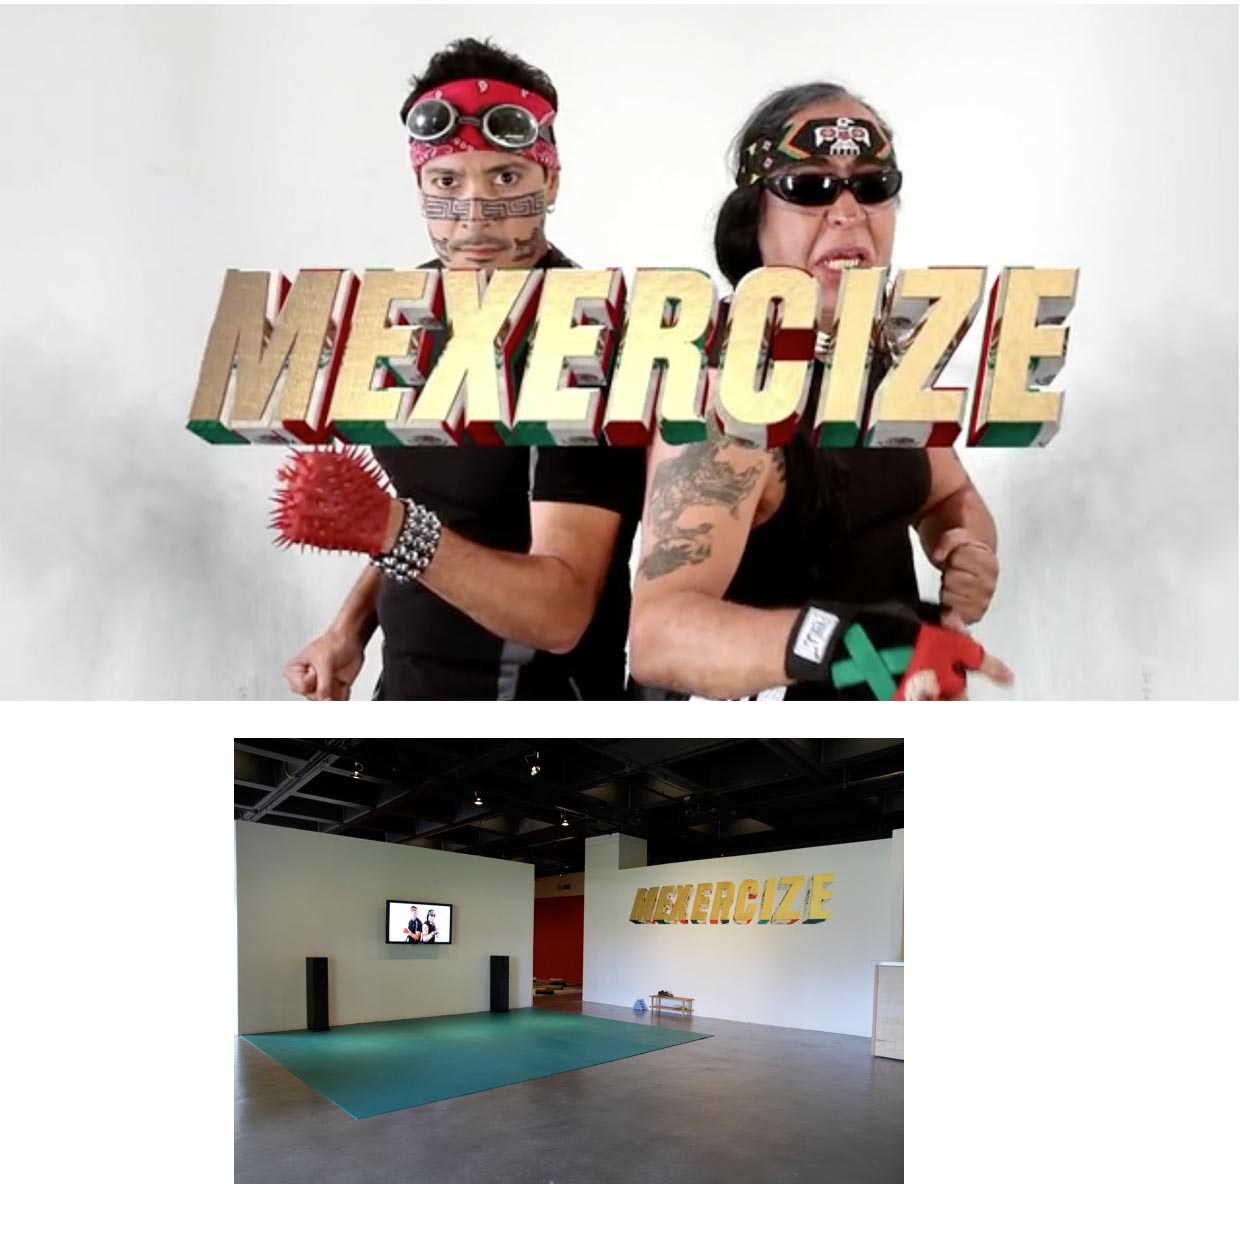 Mariah Garnett, Mexercize, 2013, HD video, 20min, installed at Cypress College gallery, collaboration with Guillermo Gómez-Peña